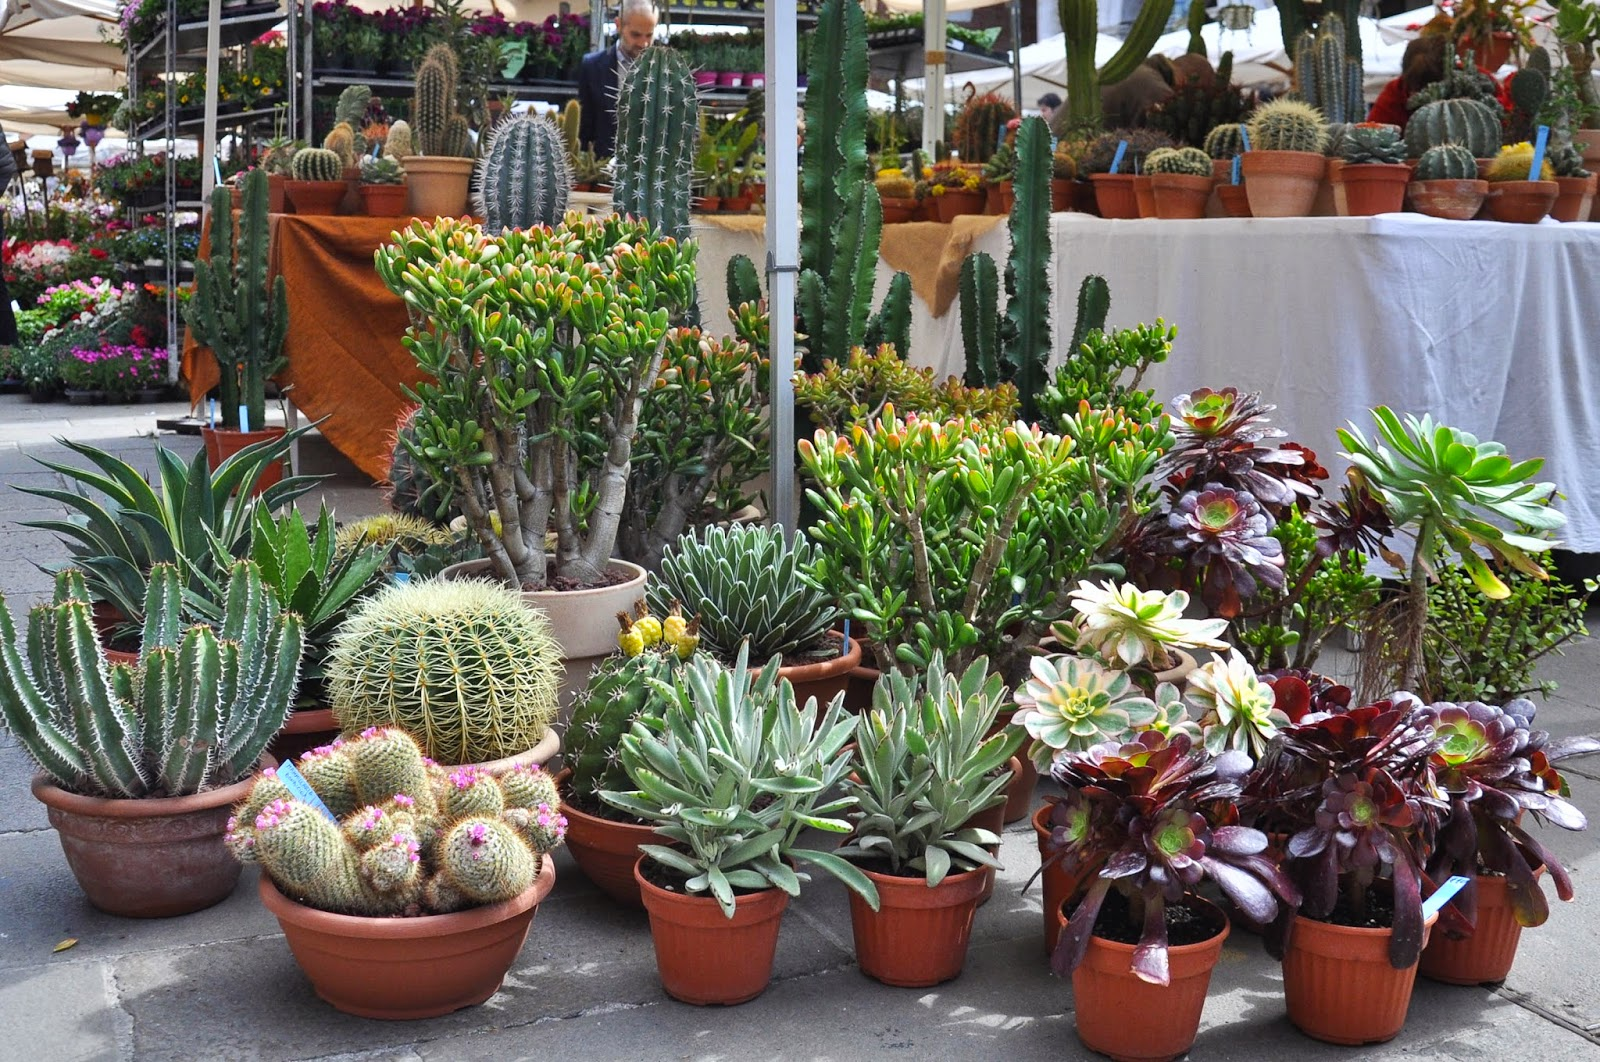 Cacti, 7th Edition of 'Fiori, colori, e...' - Floriculture market show, Vicenza, Italy